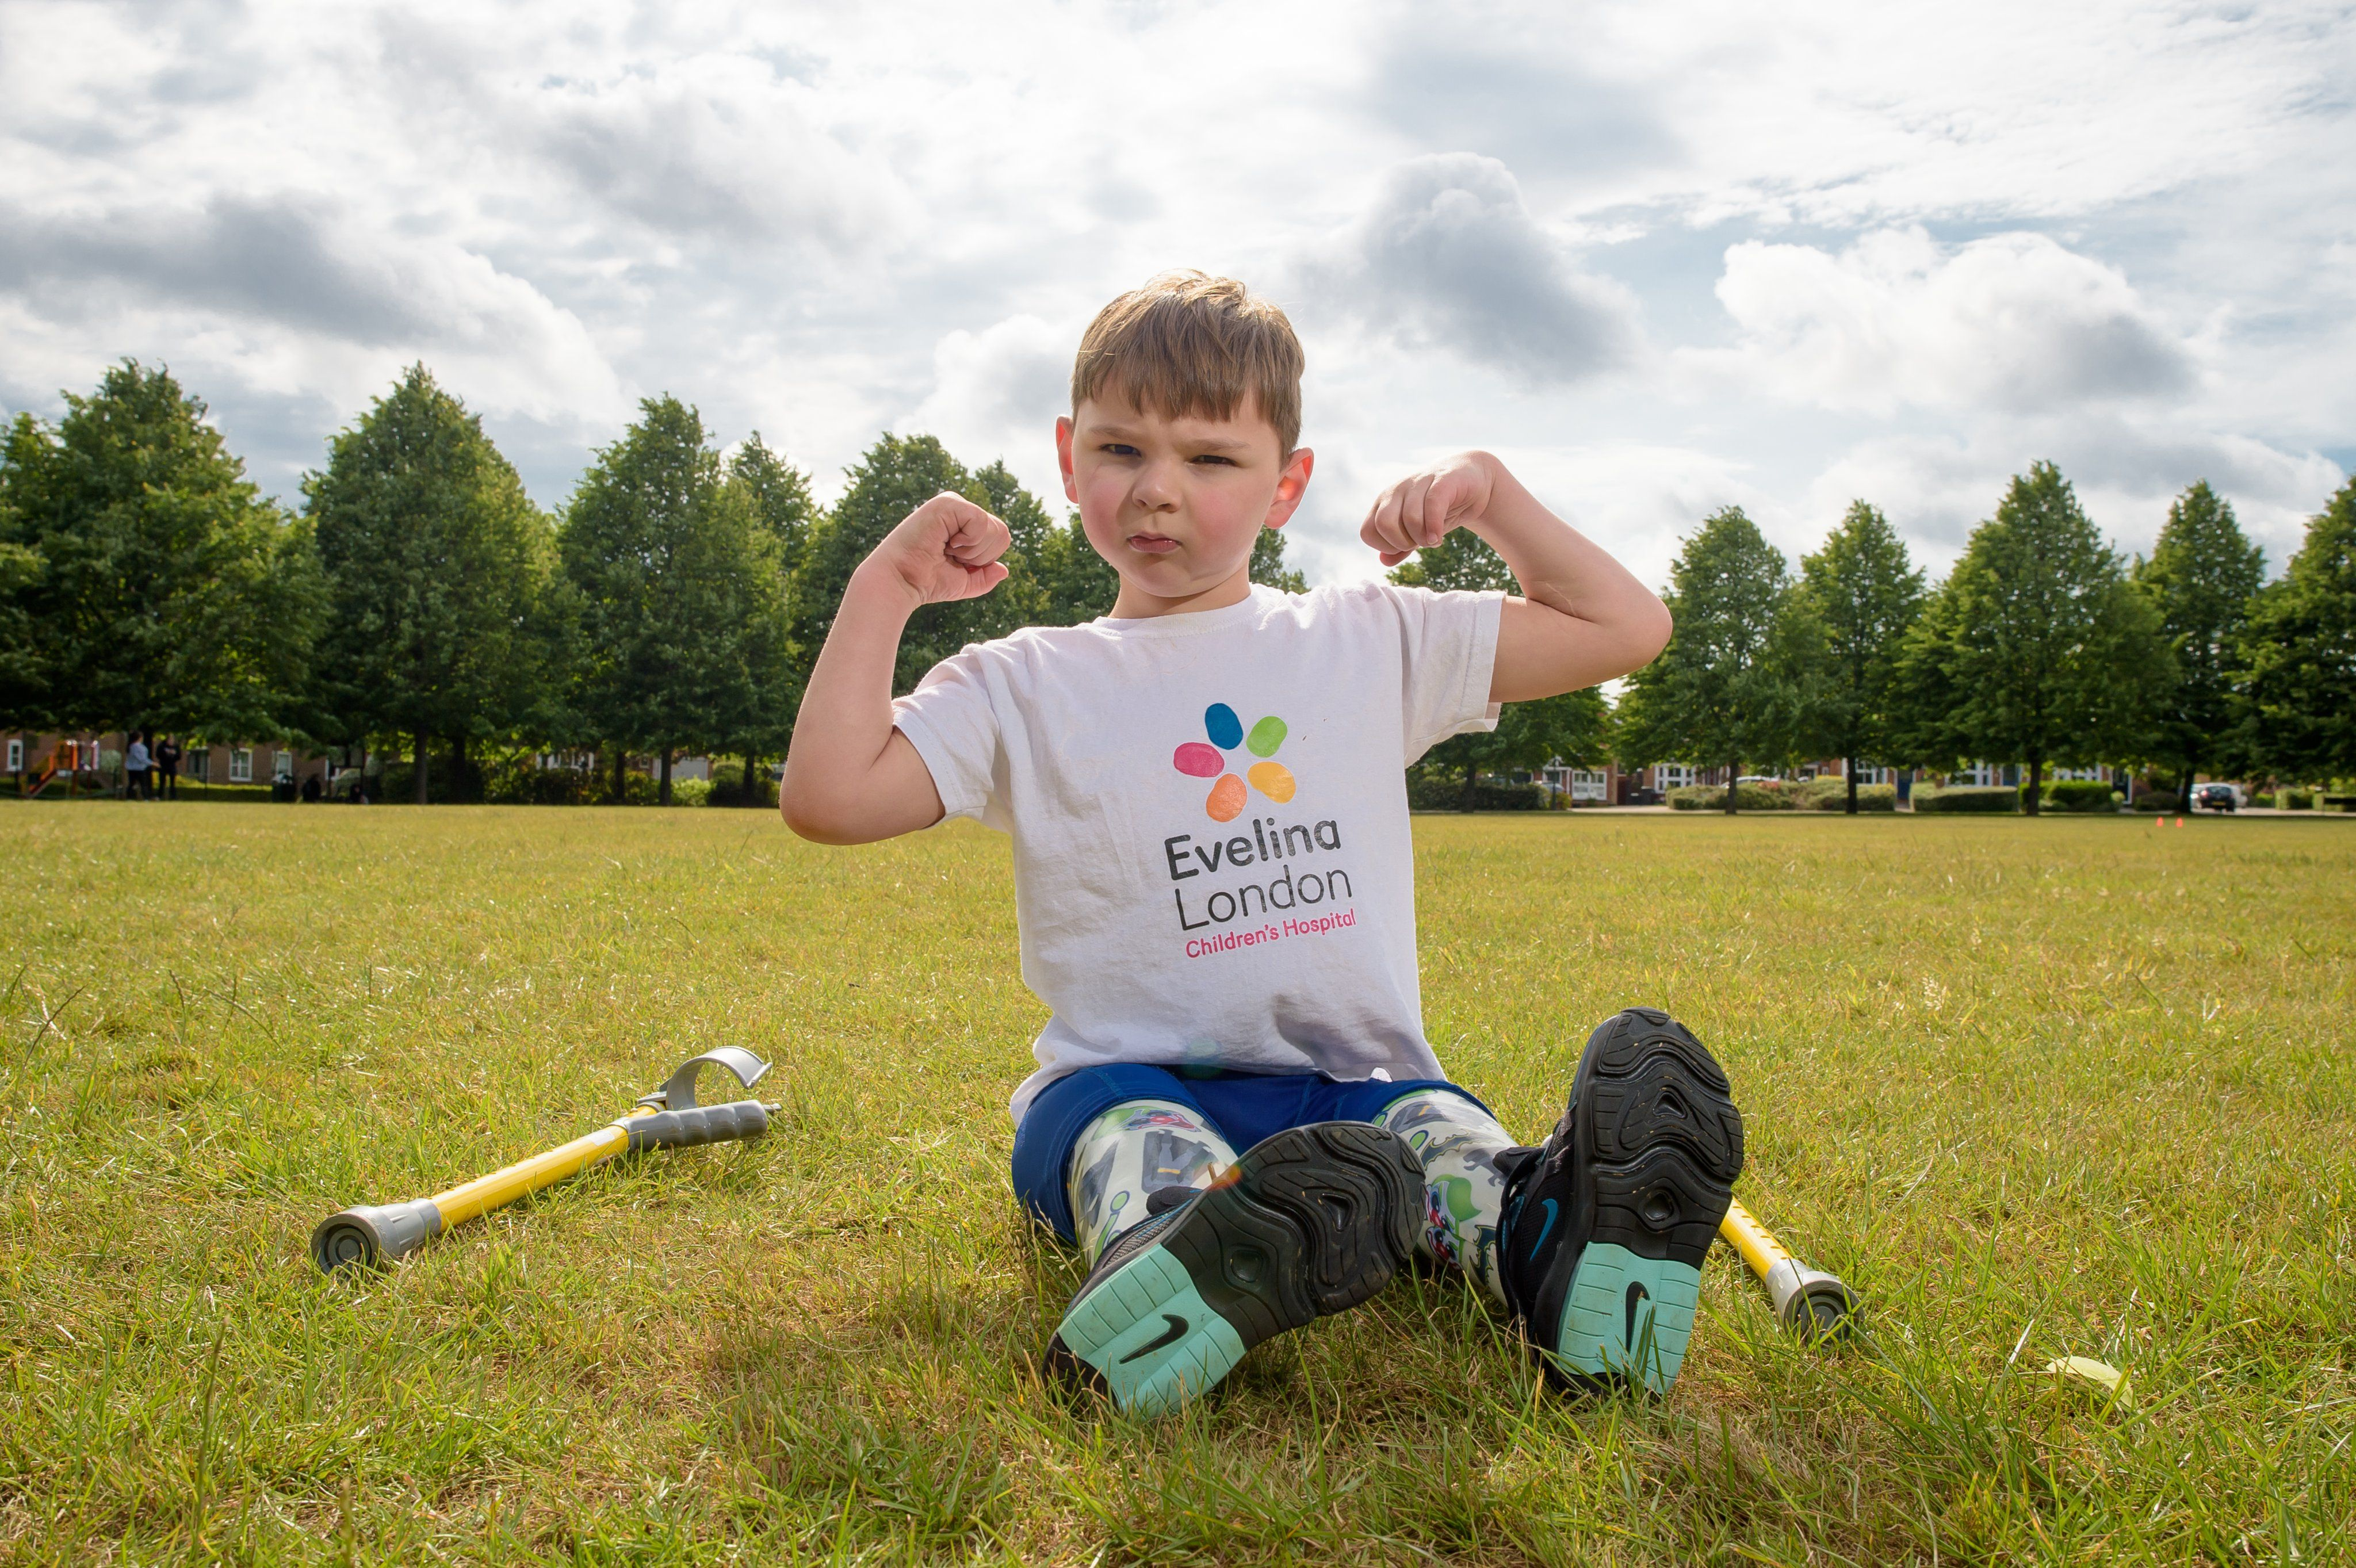 A 5-year-old boy who had both legs amputated has raised £1 million ...